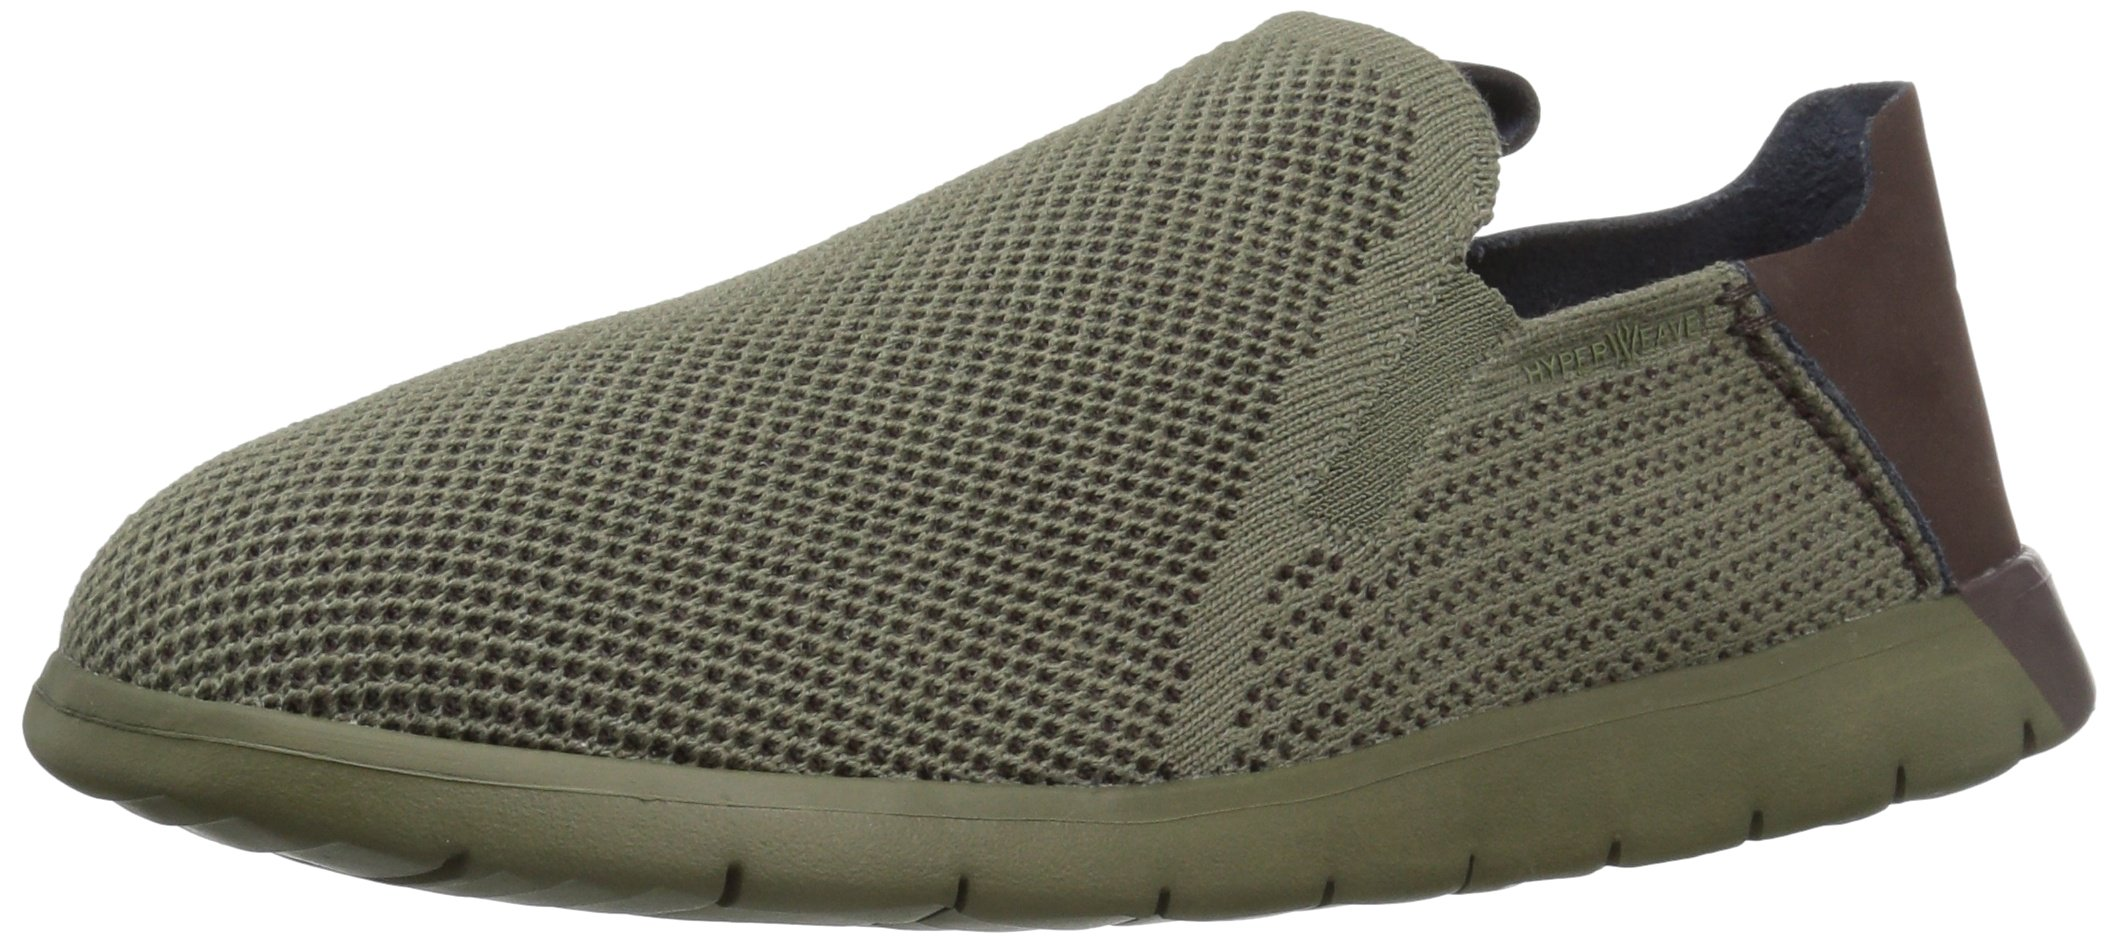 UGG Men's Knox Hyperweave Fashion Sneaker, Burnt Olive, 9.5 US/9.5 M US